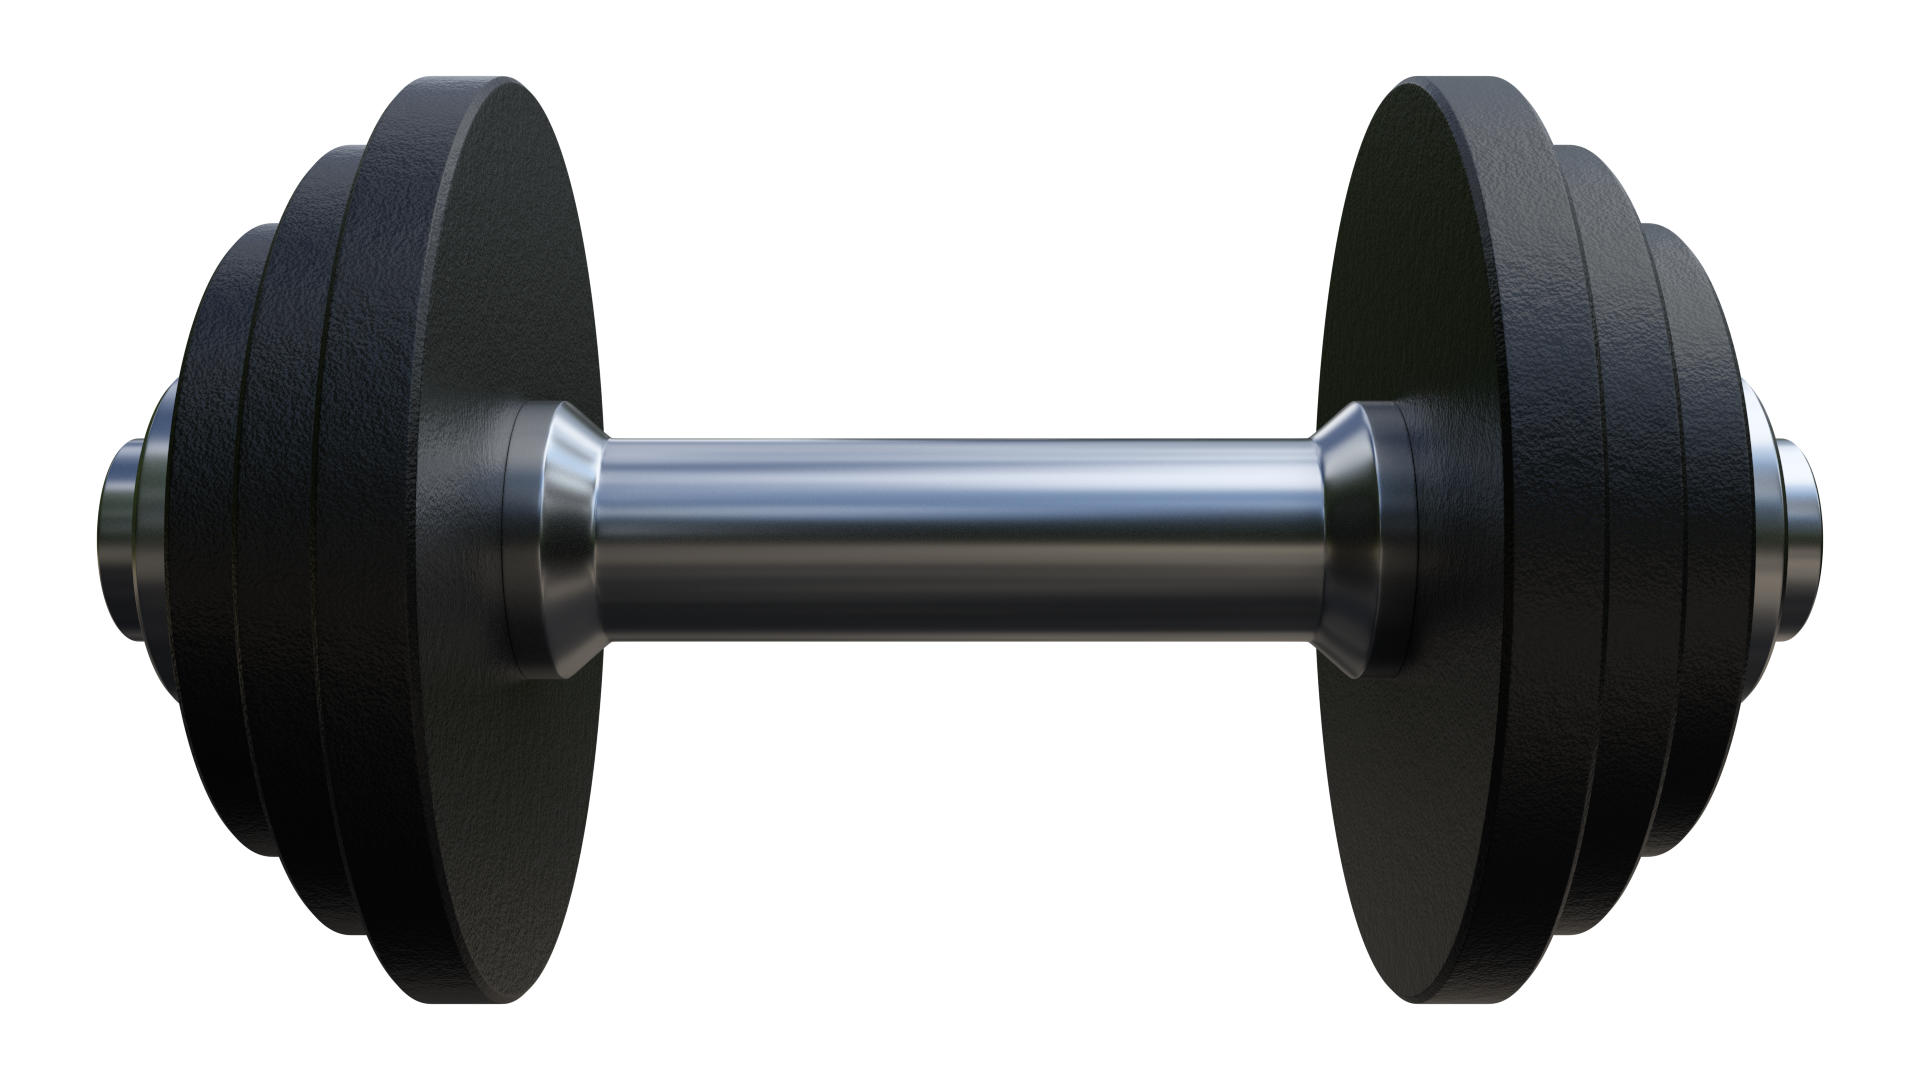 Dumbbells3 Dumbbells2 Dumbbells1 Dumbbells5 - Dumbbells PNG - Dumbbell HD PNG